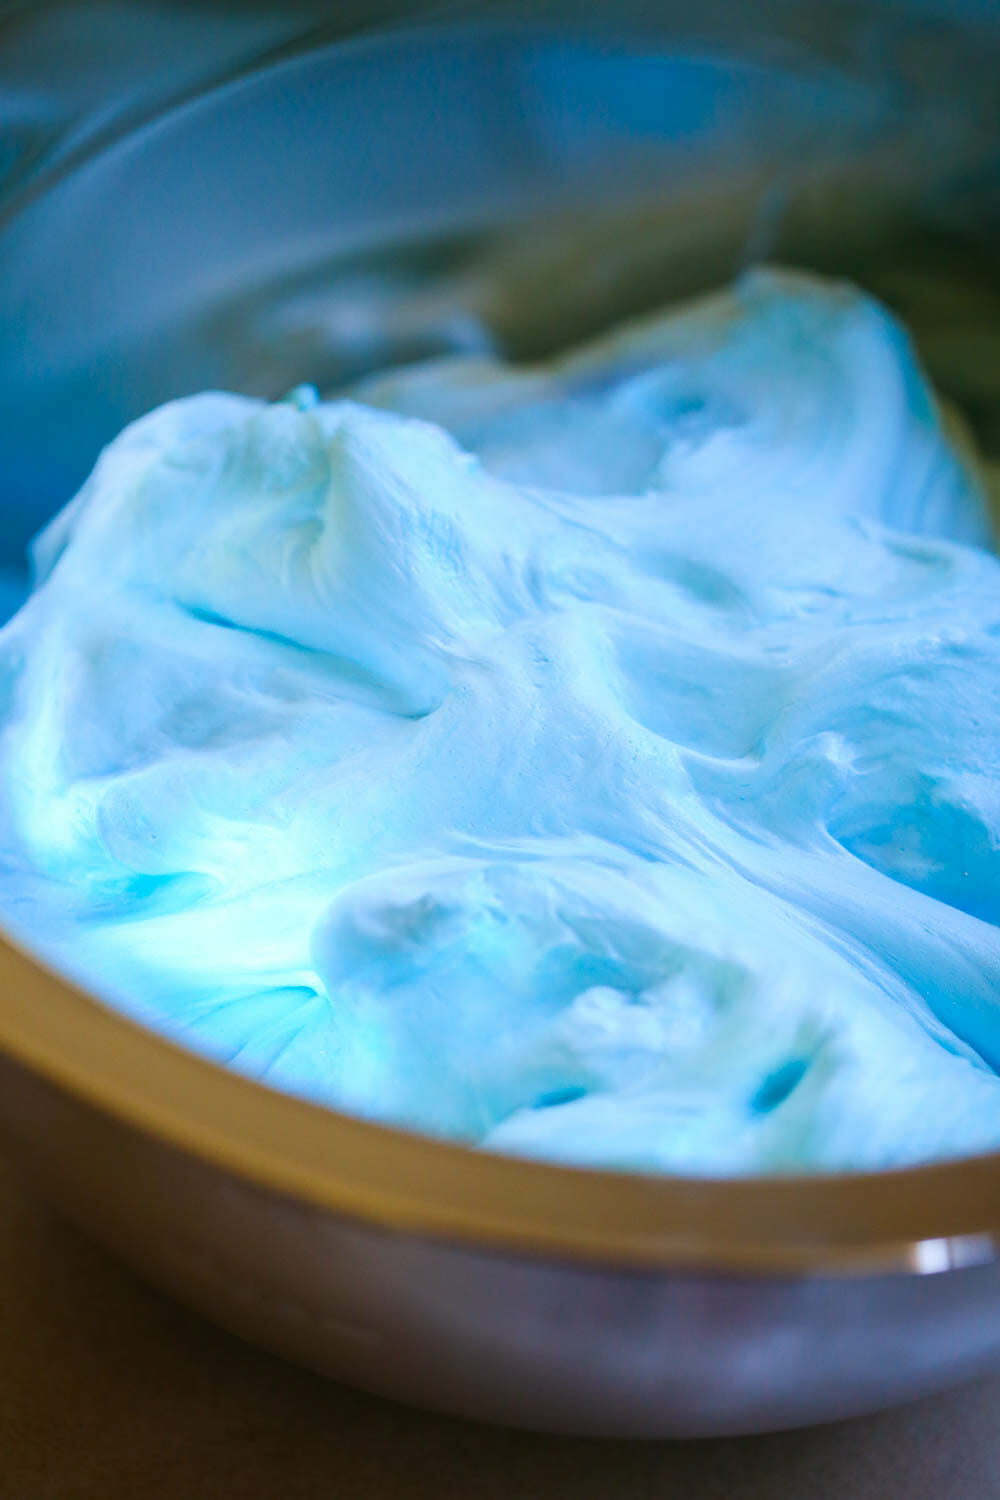 When You First Add It, The Mixture Will Seize Up, But As It Becomes How To Make  Fluffy Slime With Shaving Cream Make Ultimate